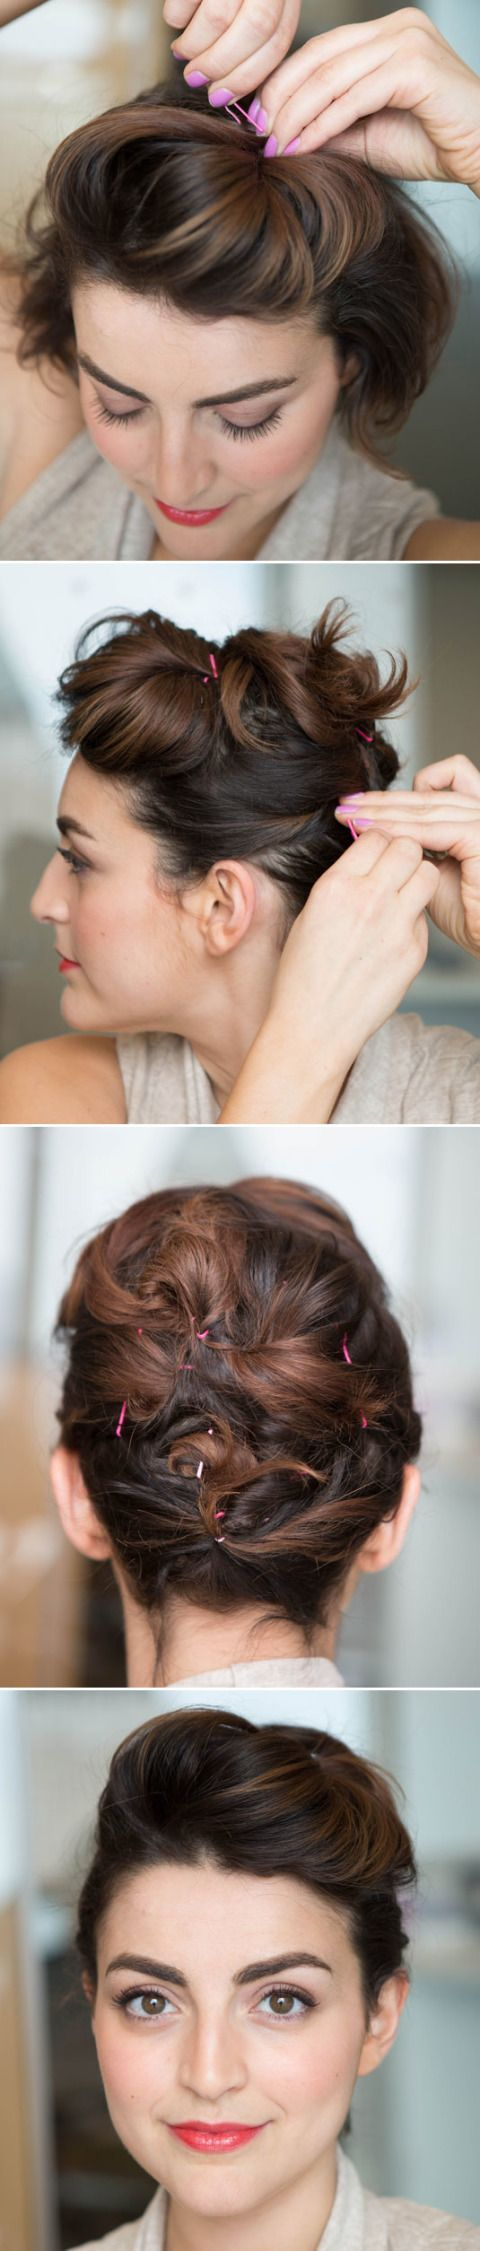 Easy hairstyles for short hair to do at home step by step chroma